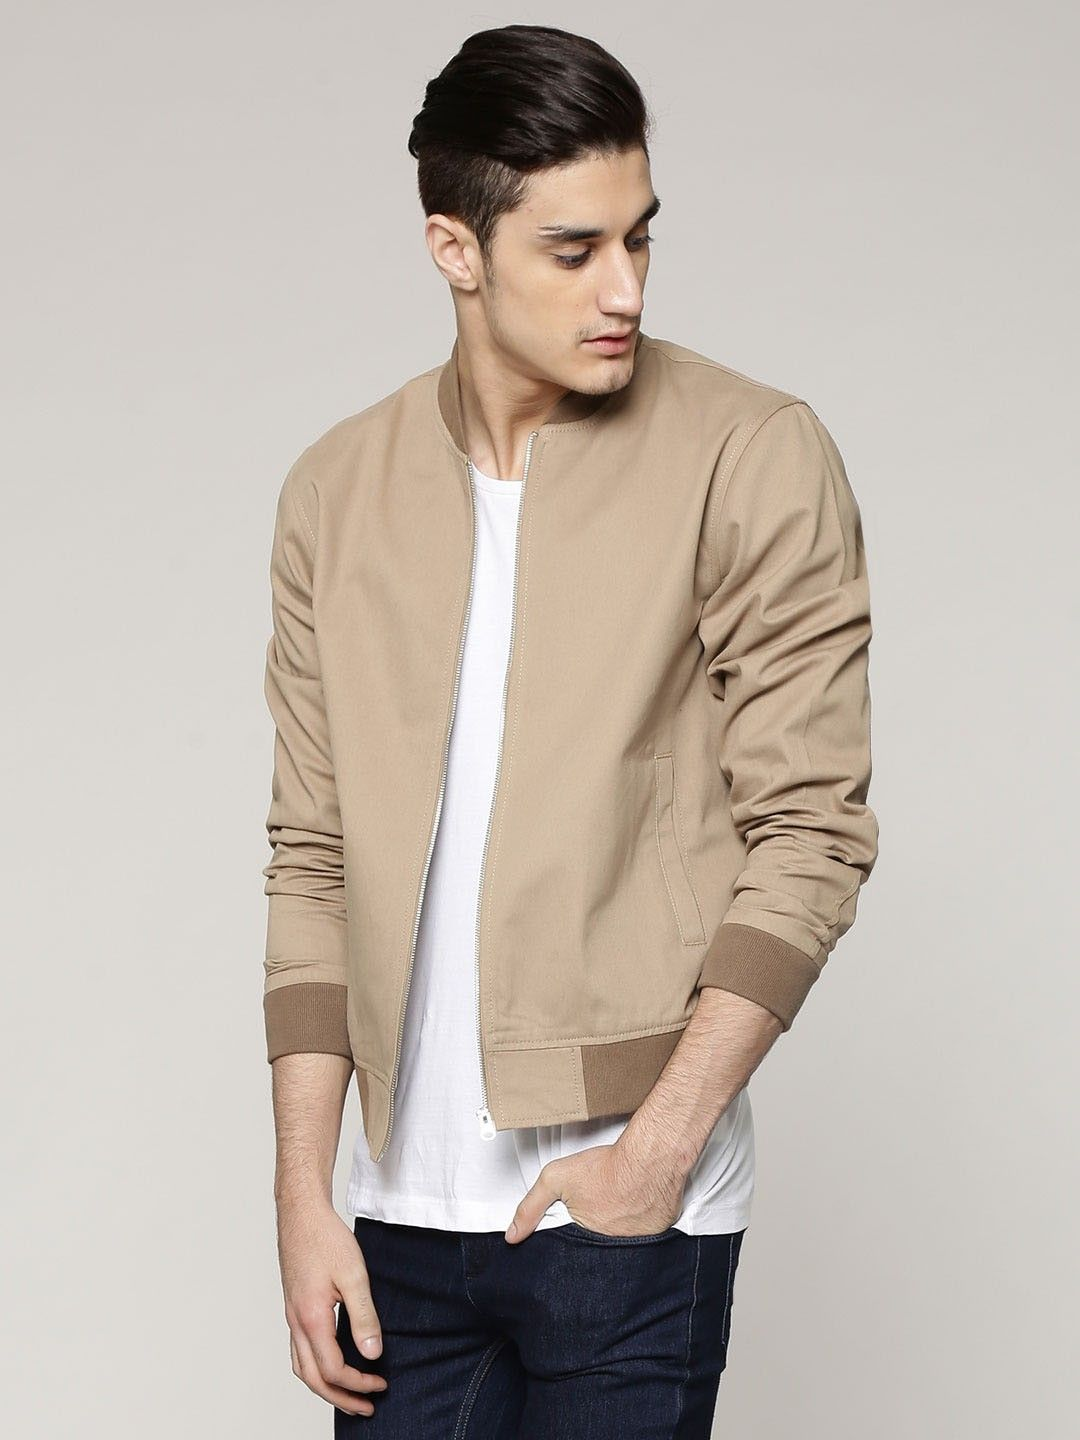 ffb002a0e9db6 Buy NEW LOOK Cotton Twill Bomber Jacket For Men - Men s Brown Bomber  Jackets…